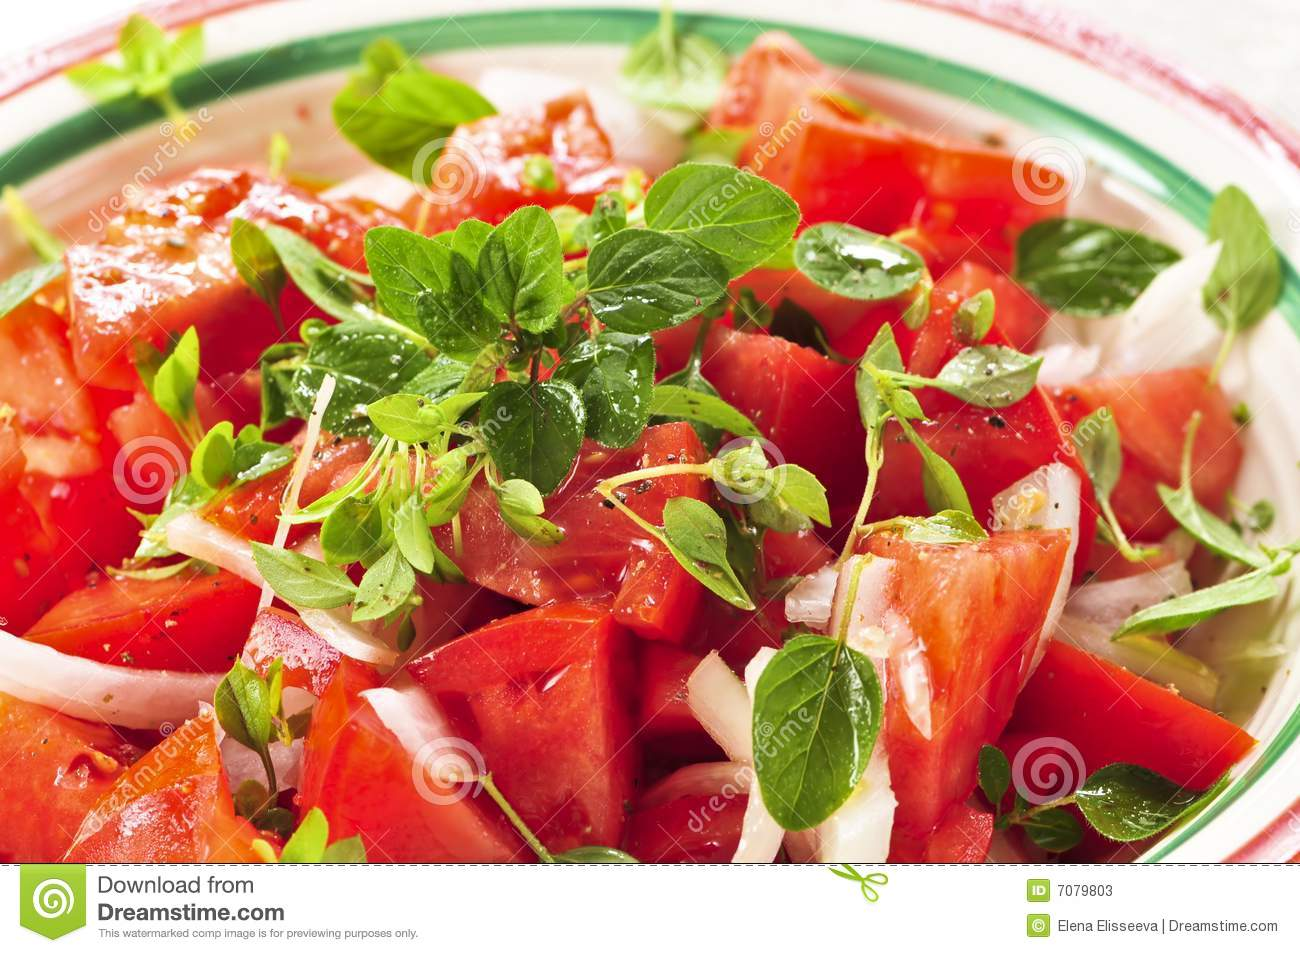 how to cut a roma tomato for salad